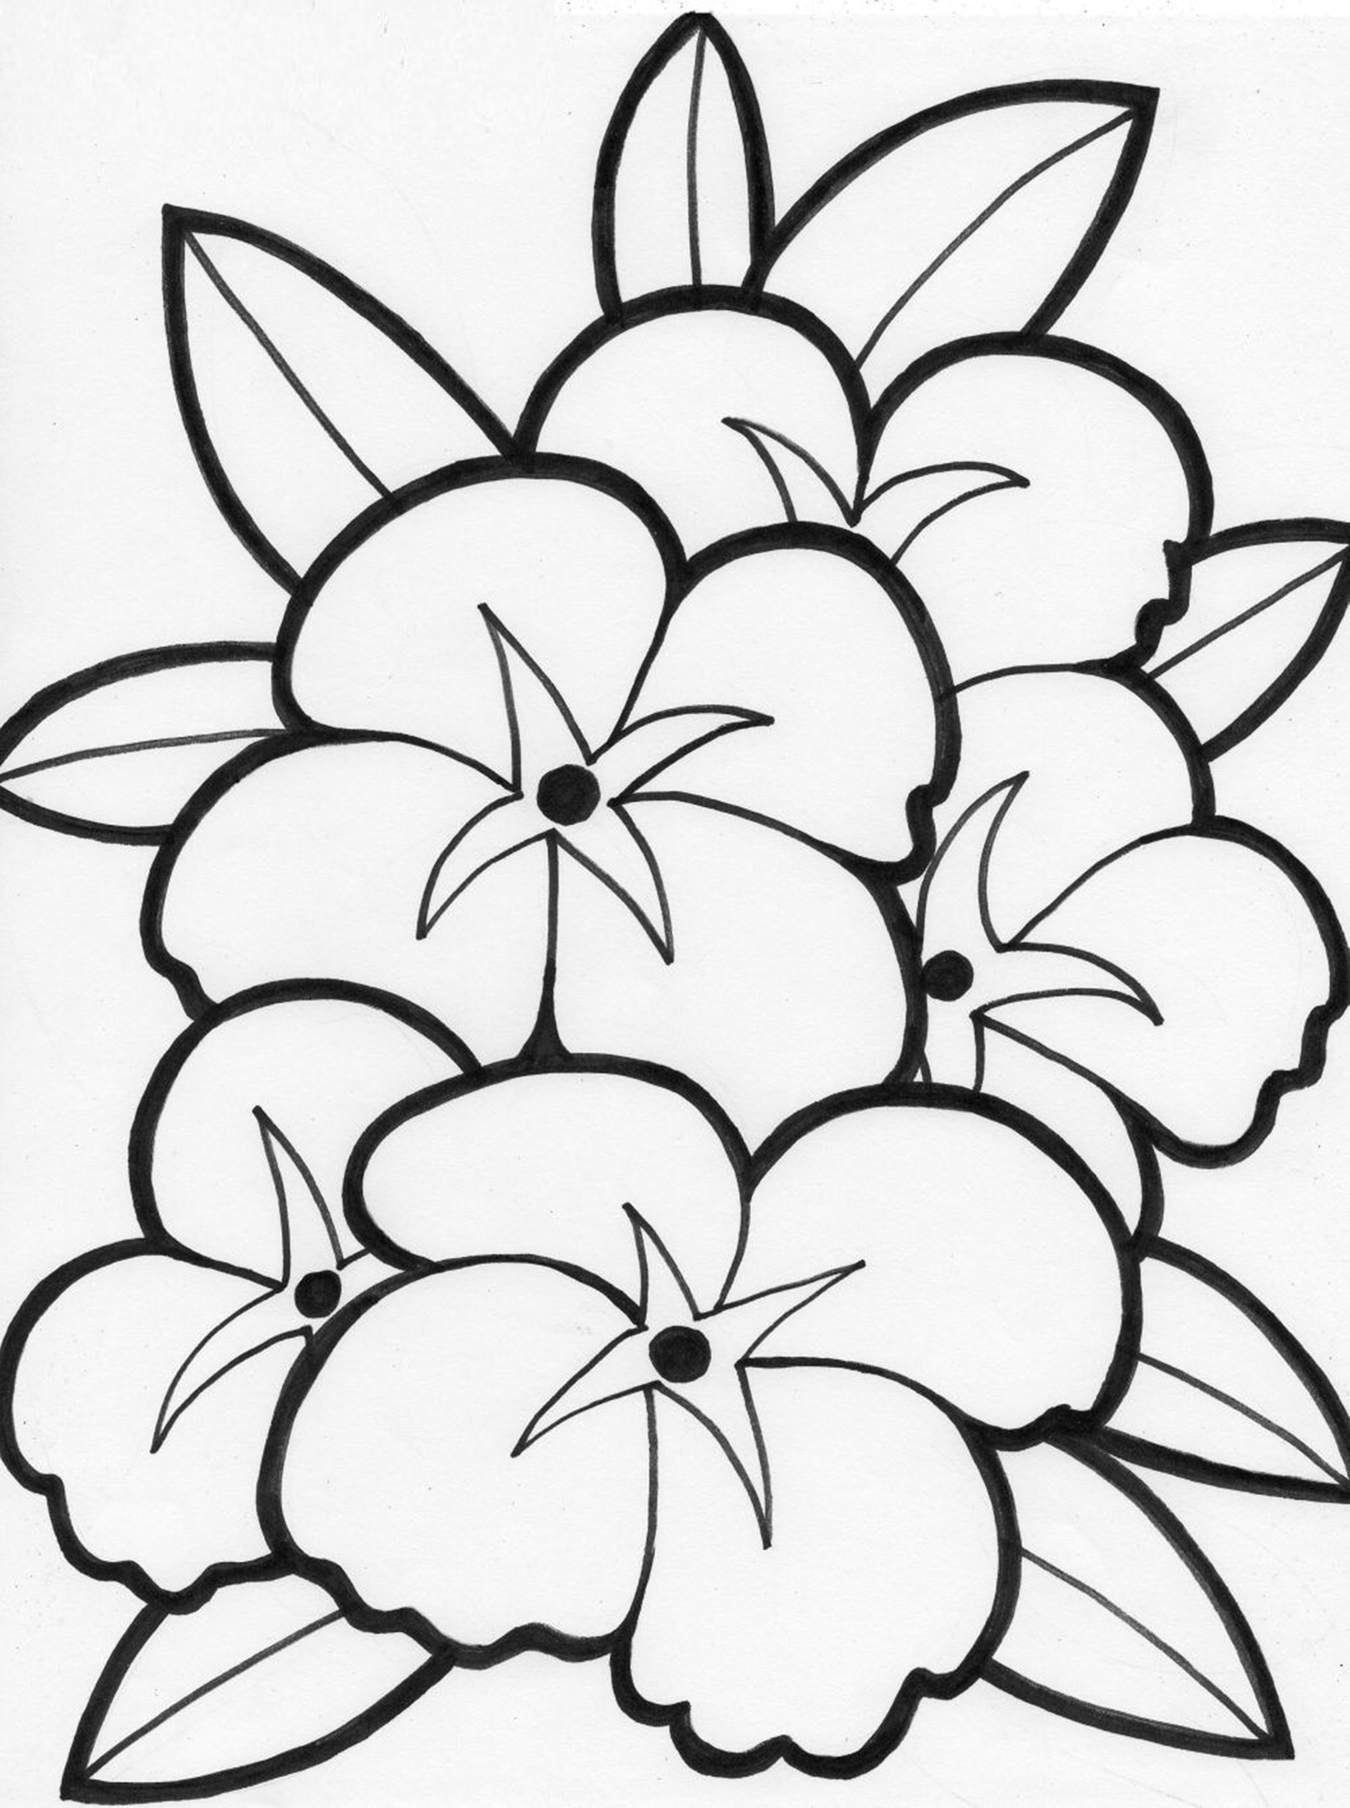 graphic about Printable Flower Coloring Pages called Free of charge Printable Flower Coloring Internet pages For Young children - Easiest